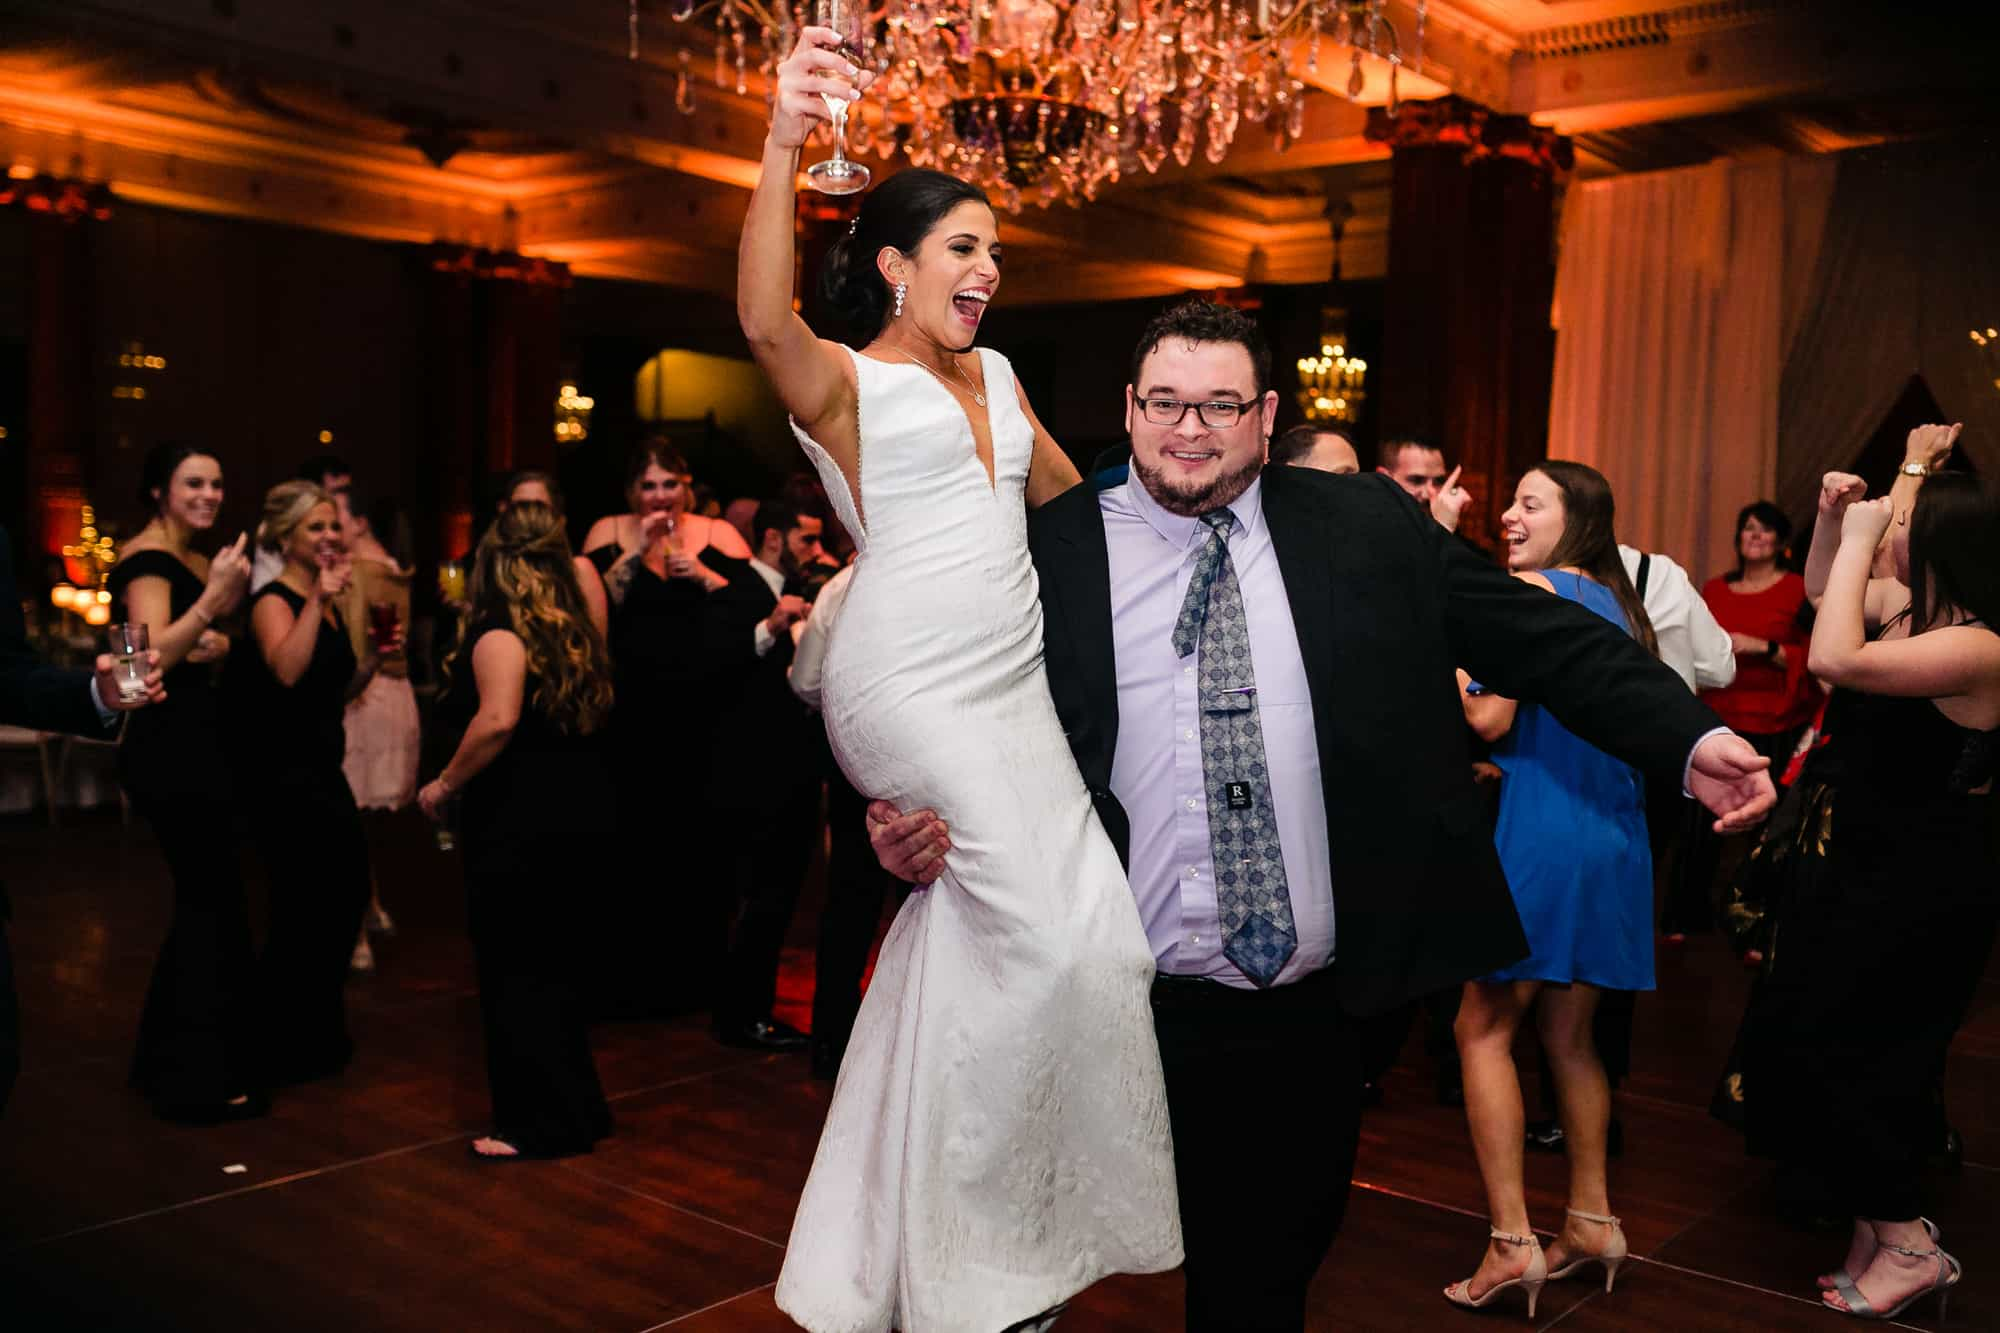 Bride being lifted up by guest at the Crystal tea Room in Philadelphia